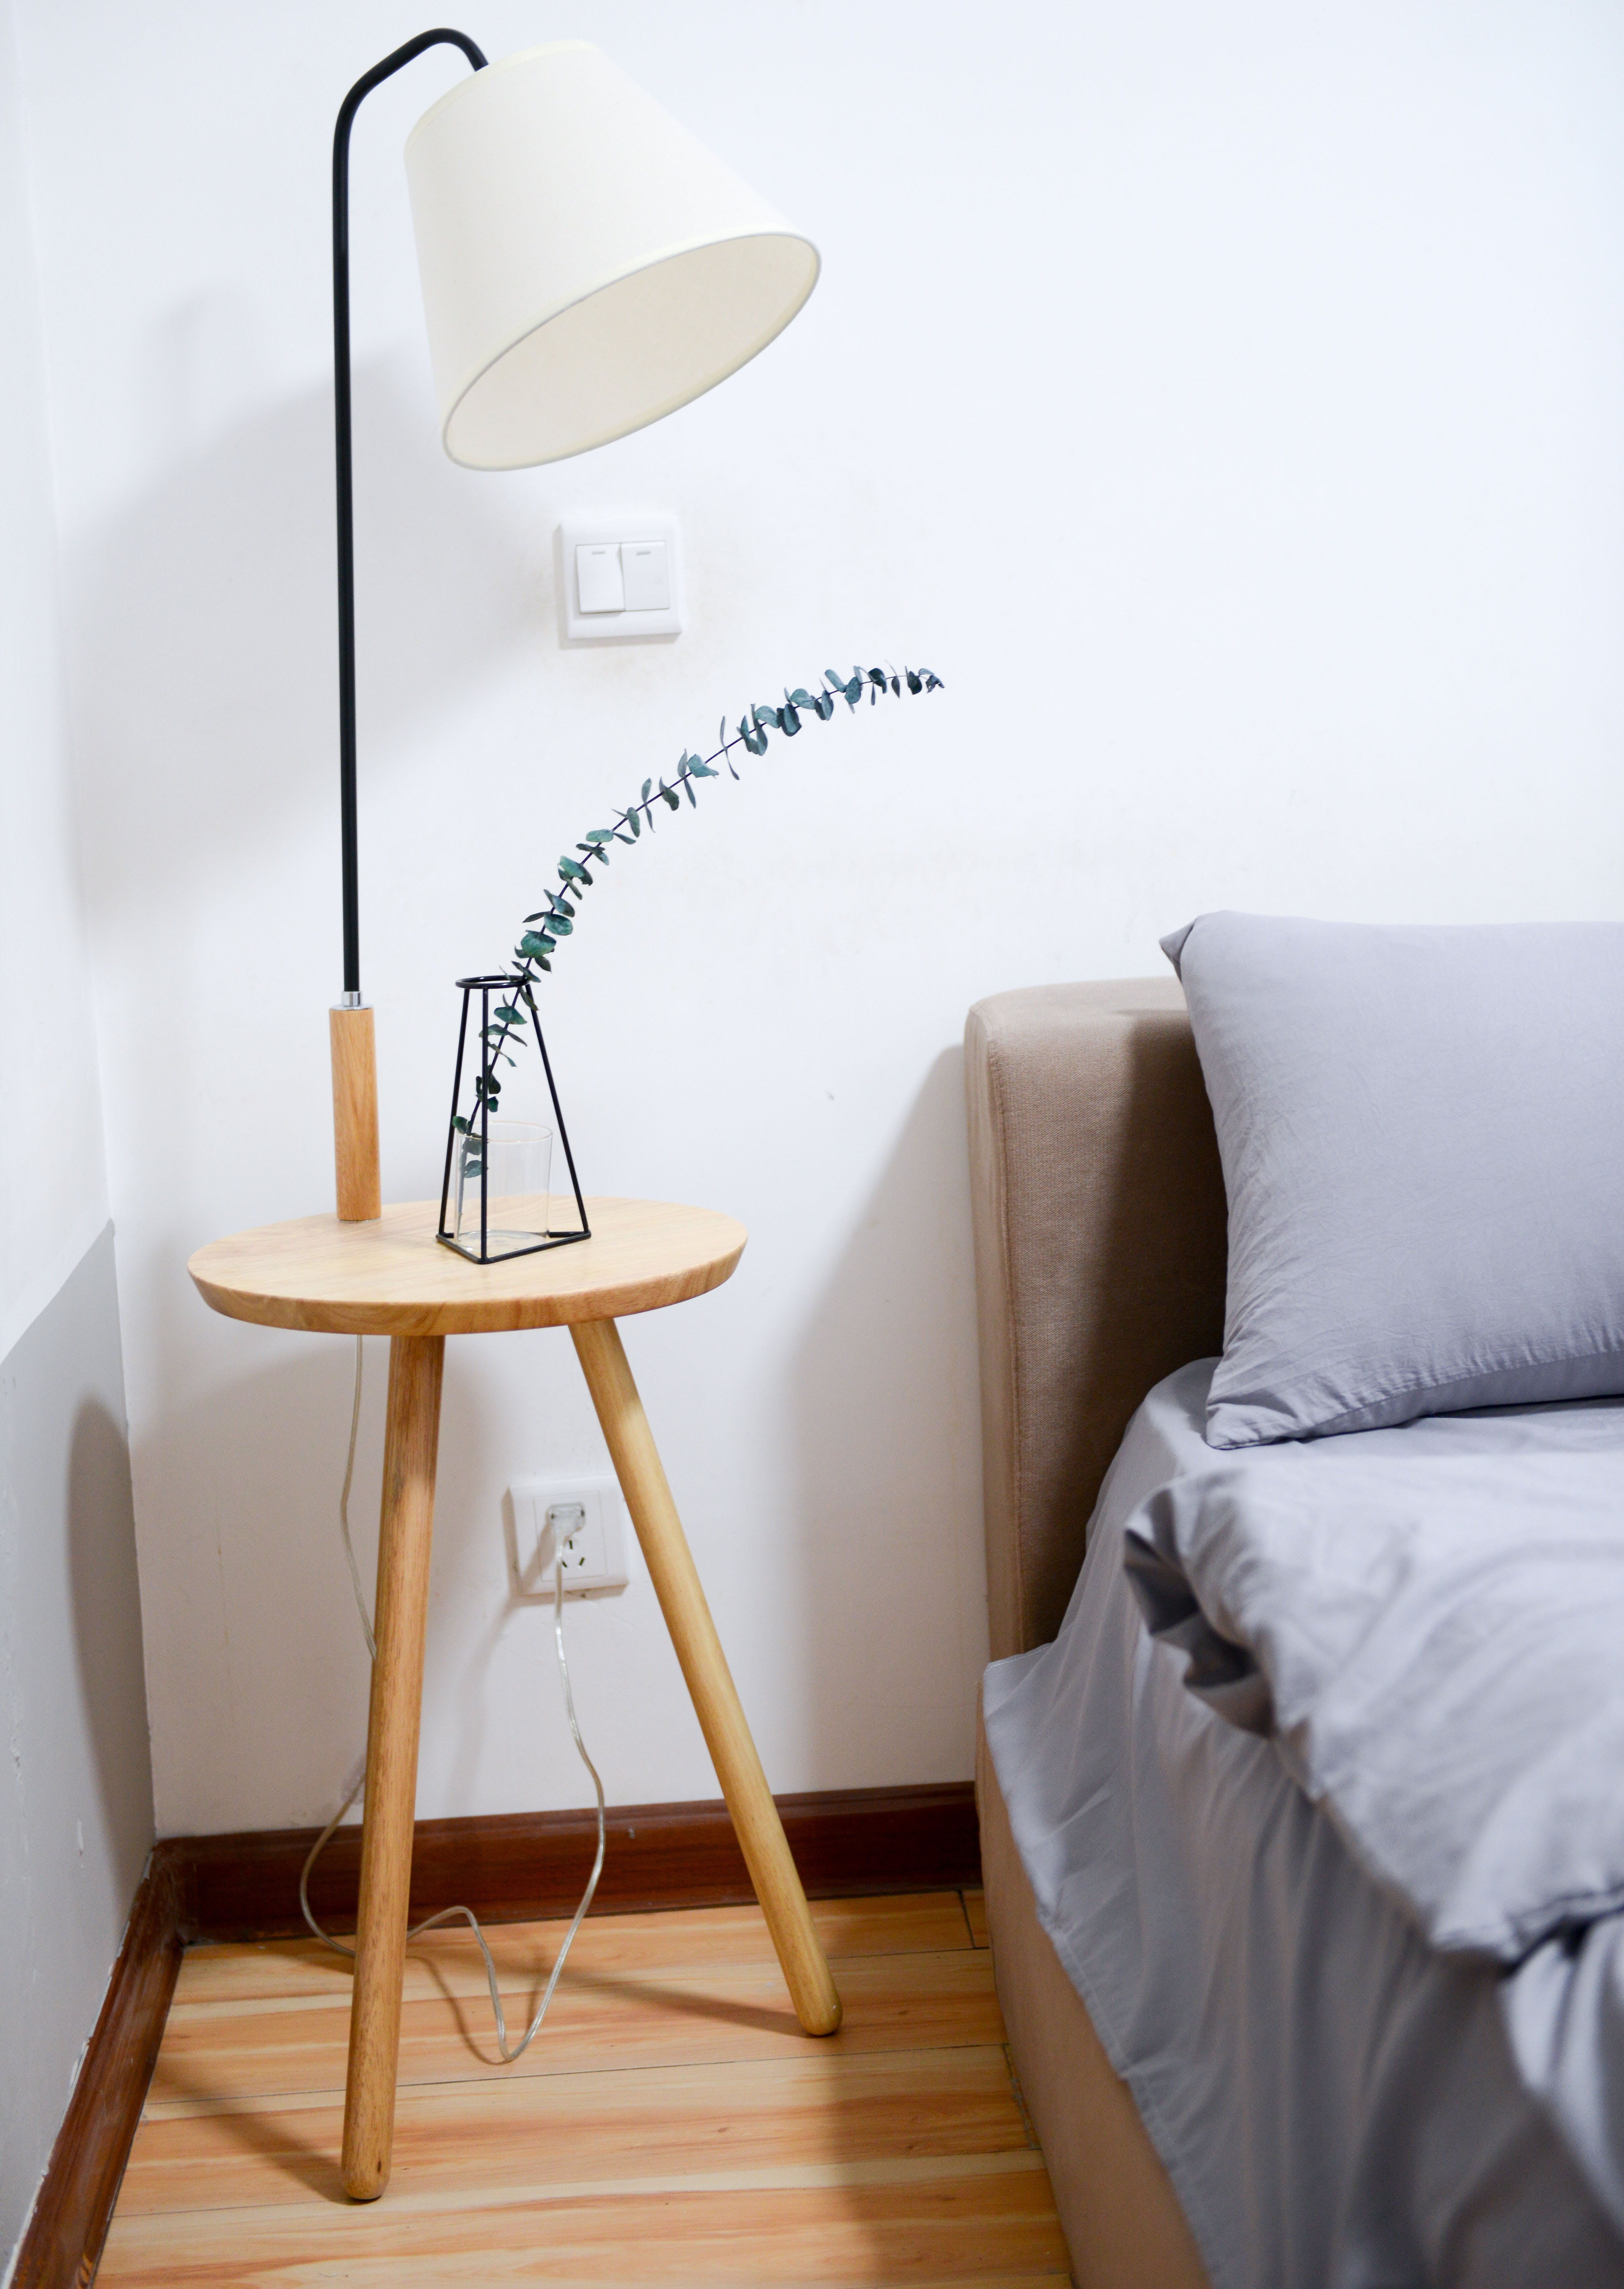 White Shade Table Lamp Near Bed